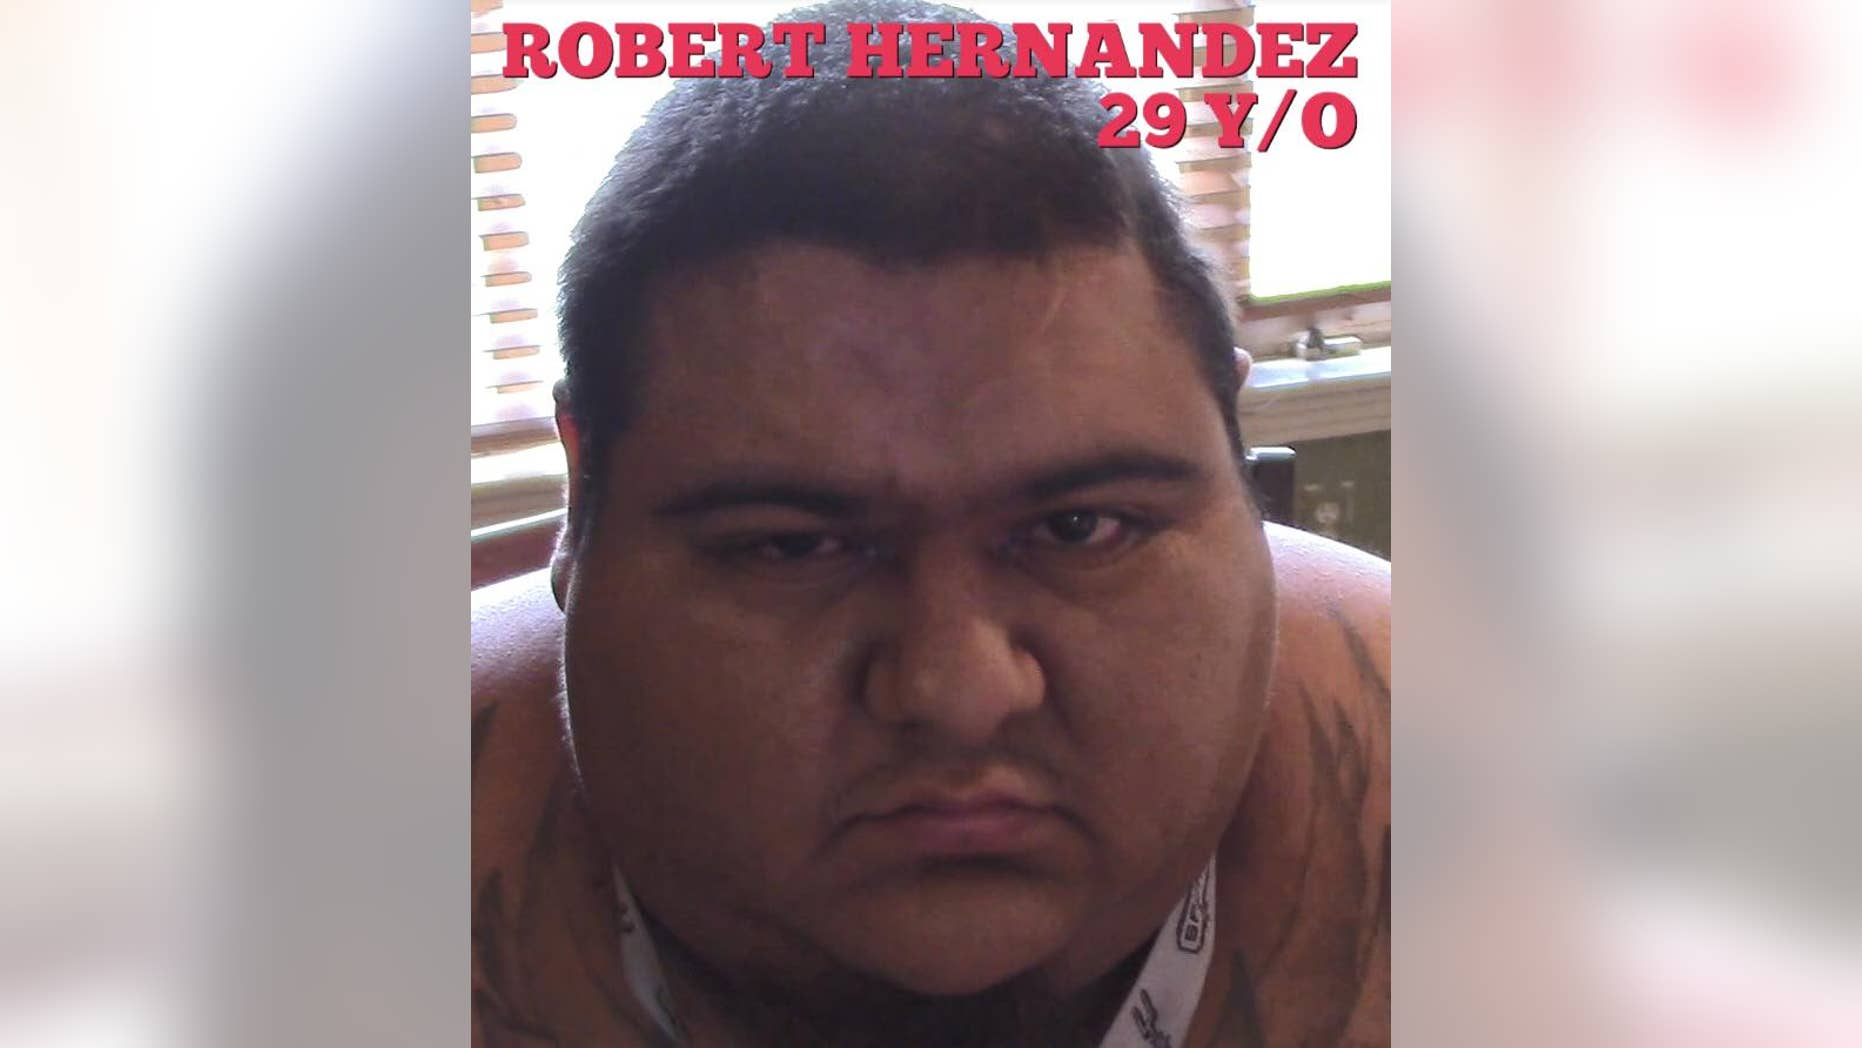 Robert Hernandez was arrested Friday after 200 pounds of marijuana was found inside his home, authorities said.